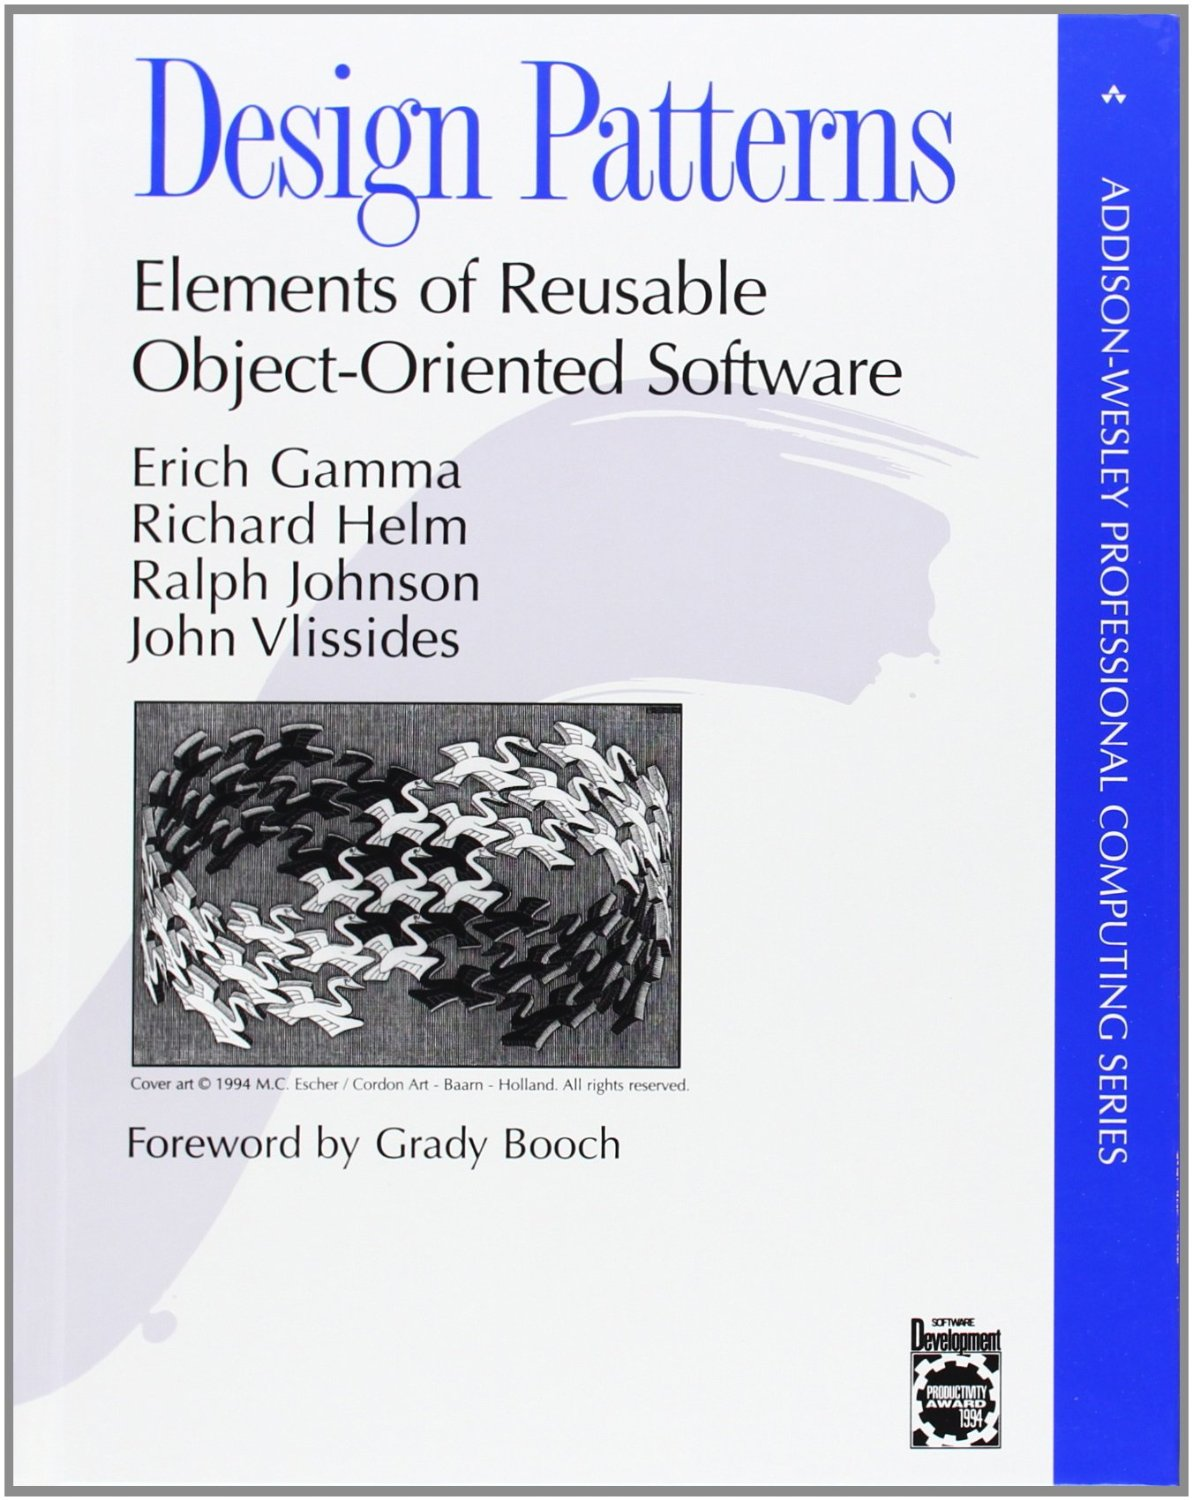 Design Patterns, by Gamma, Helm, Johnson and Vlissides